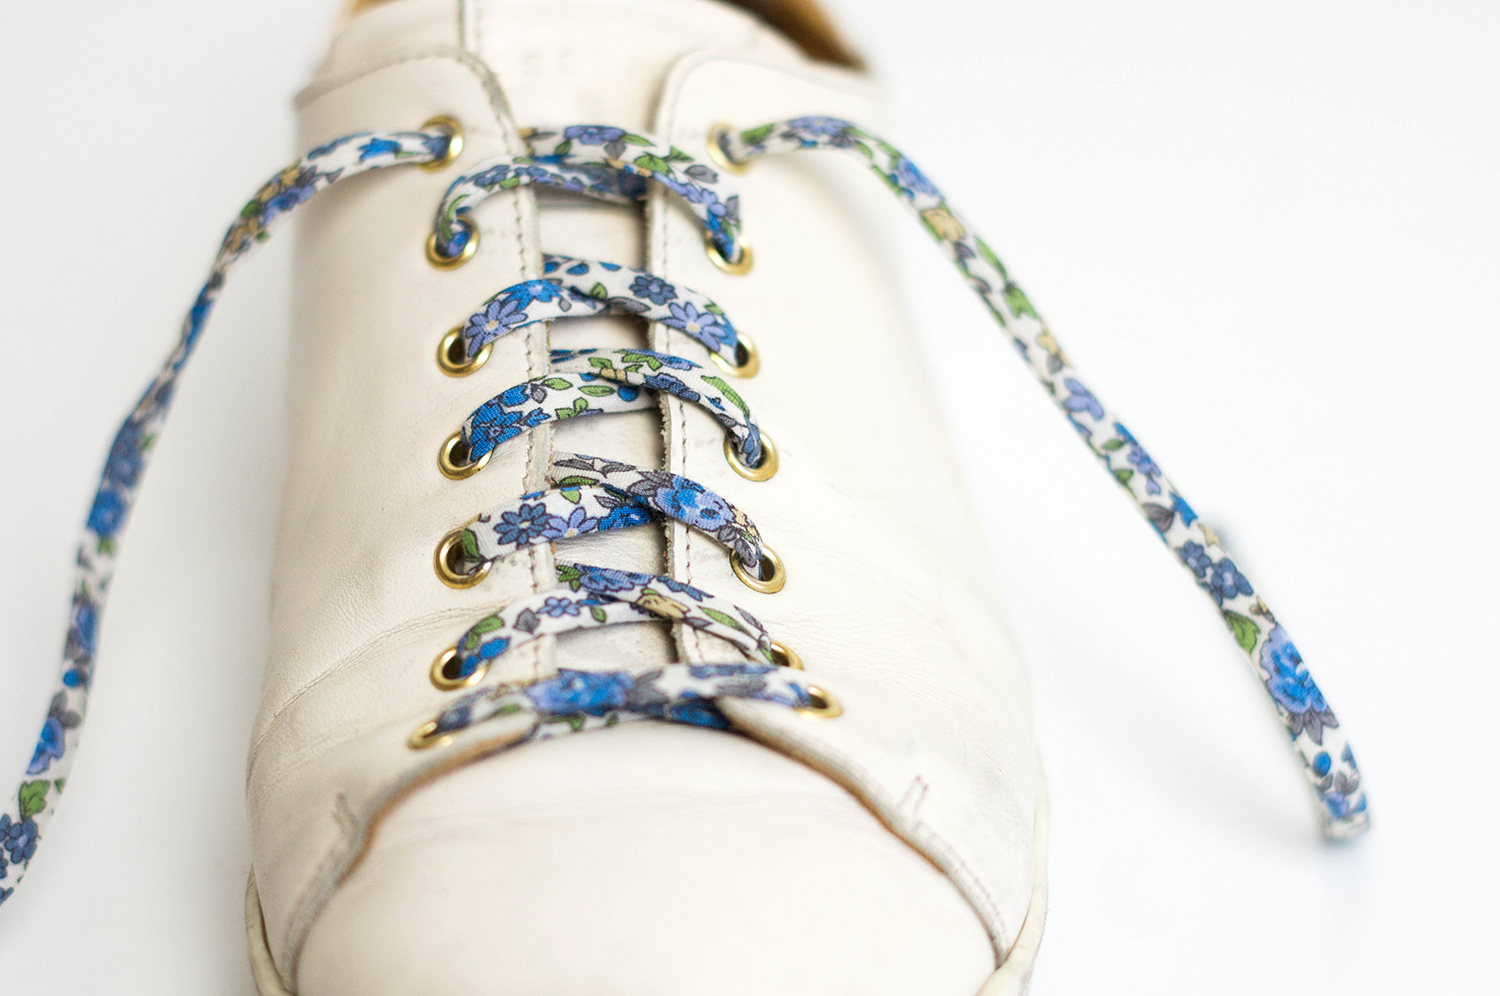 diy-lacets-baskets-froufrou-1